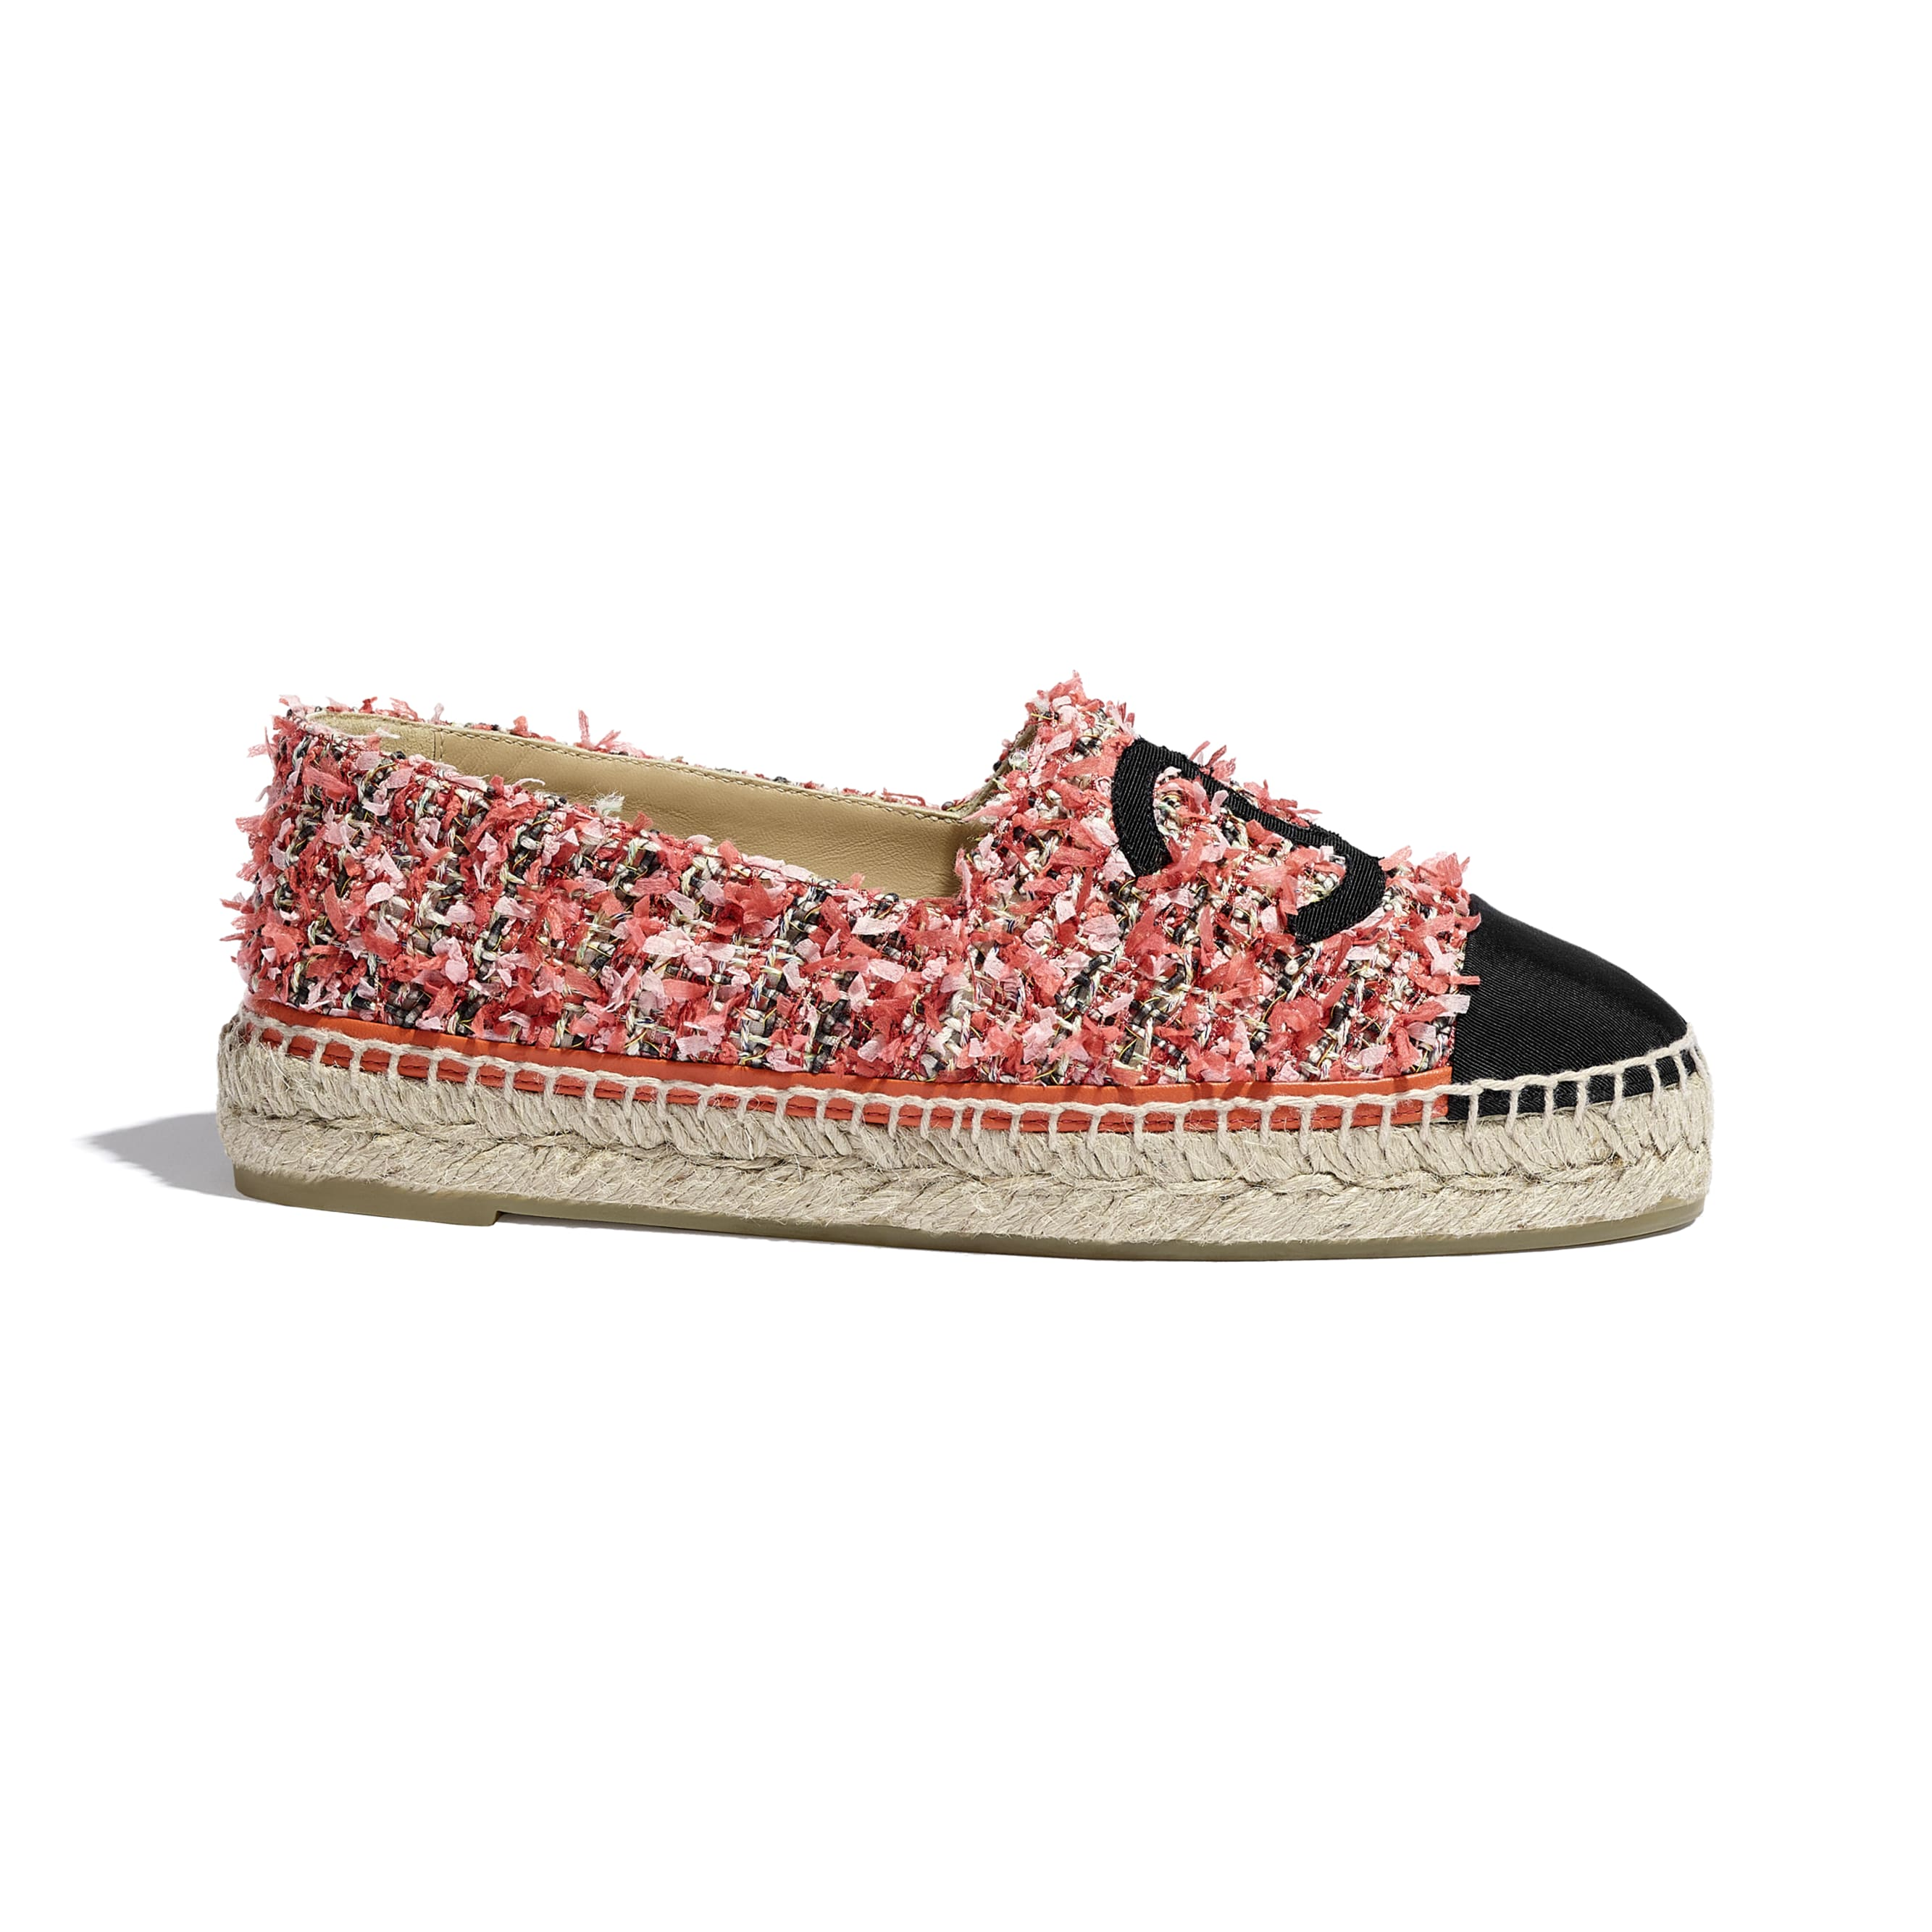 Espadrilles - Coral, Red, Pink & Black - Tweed & Grosgrain - CHANEL - Default view - see standard sized version